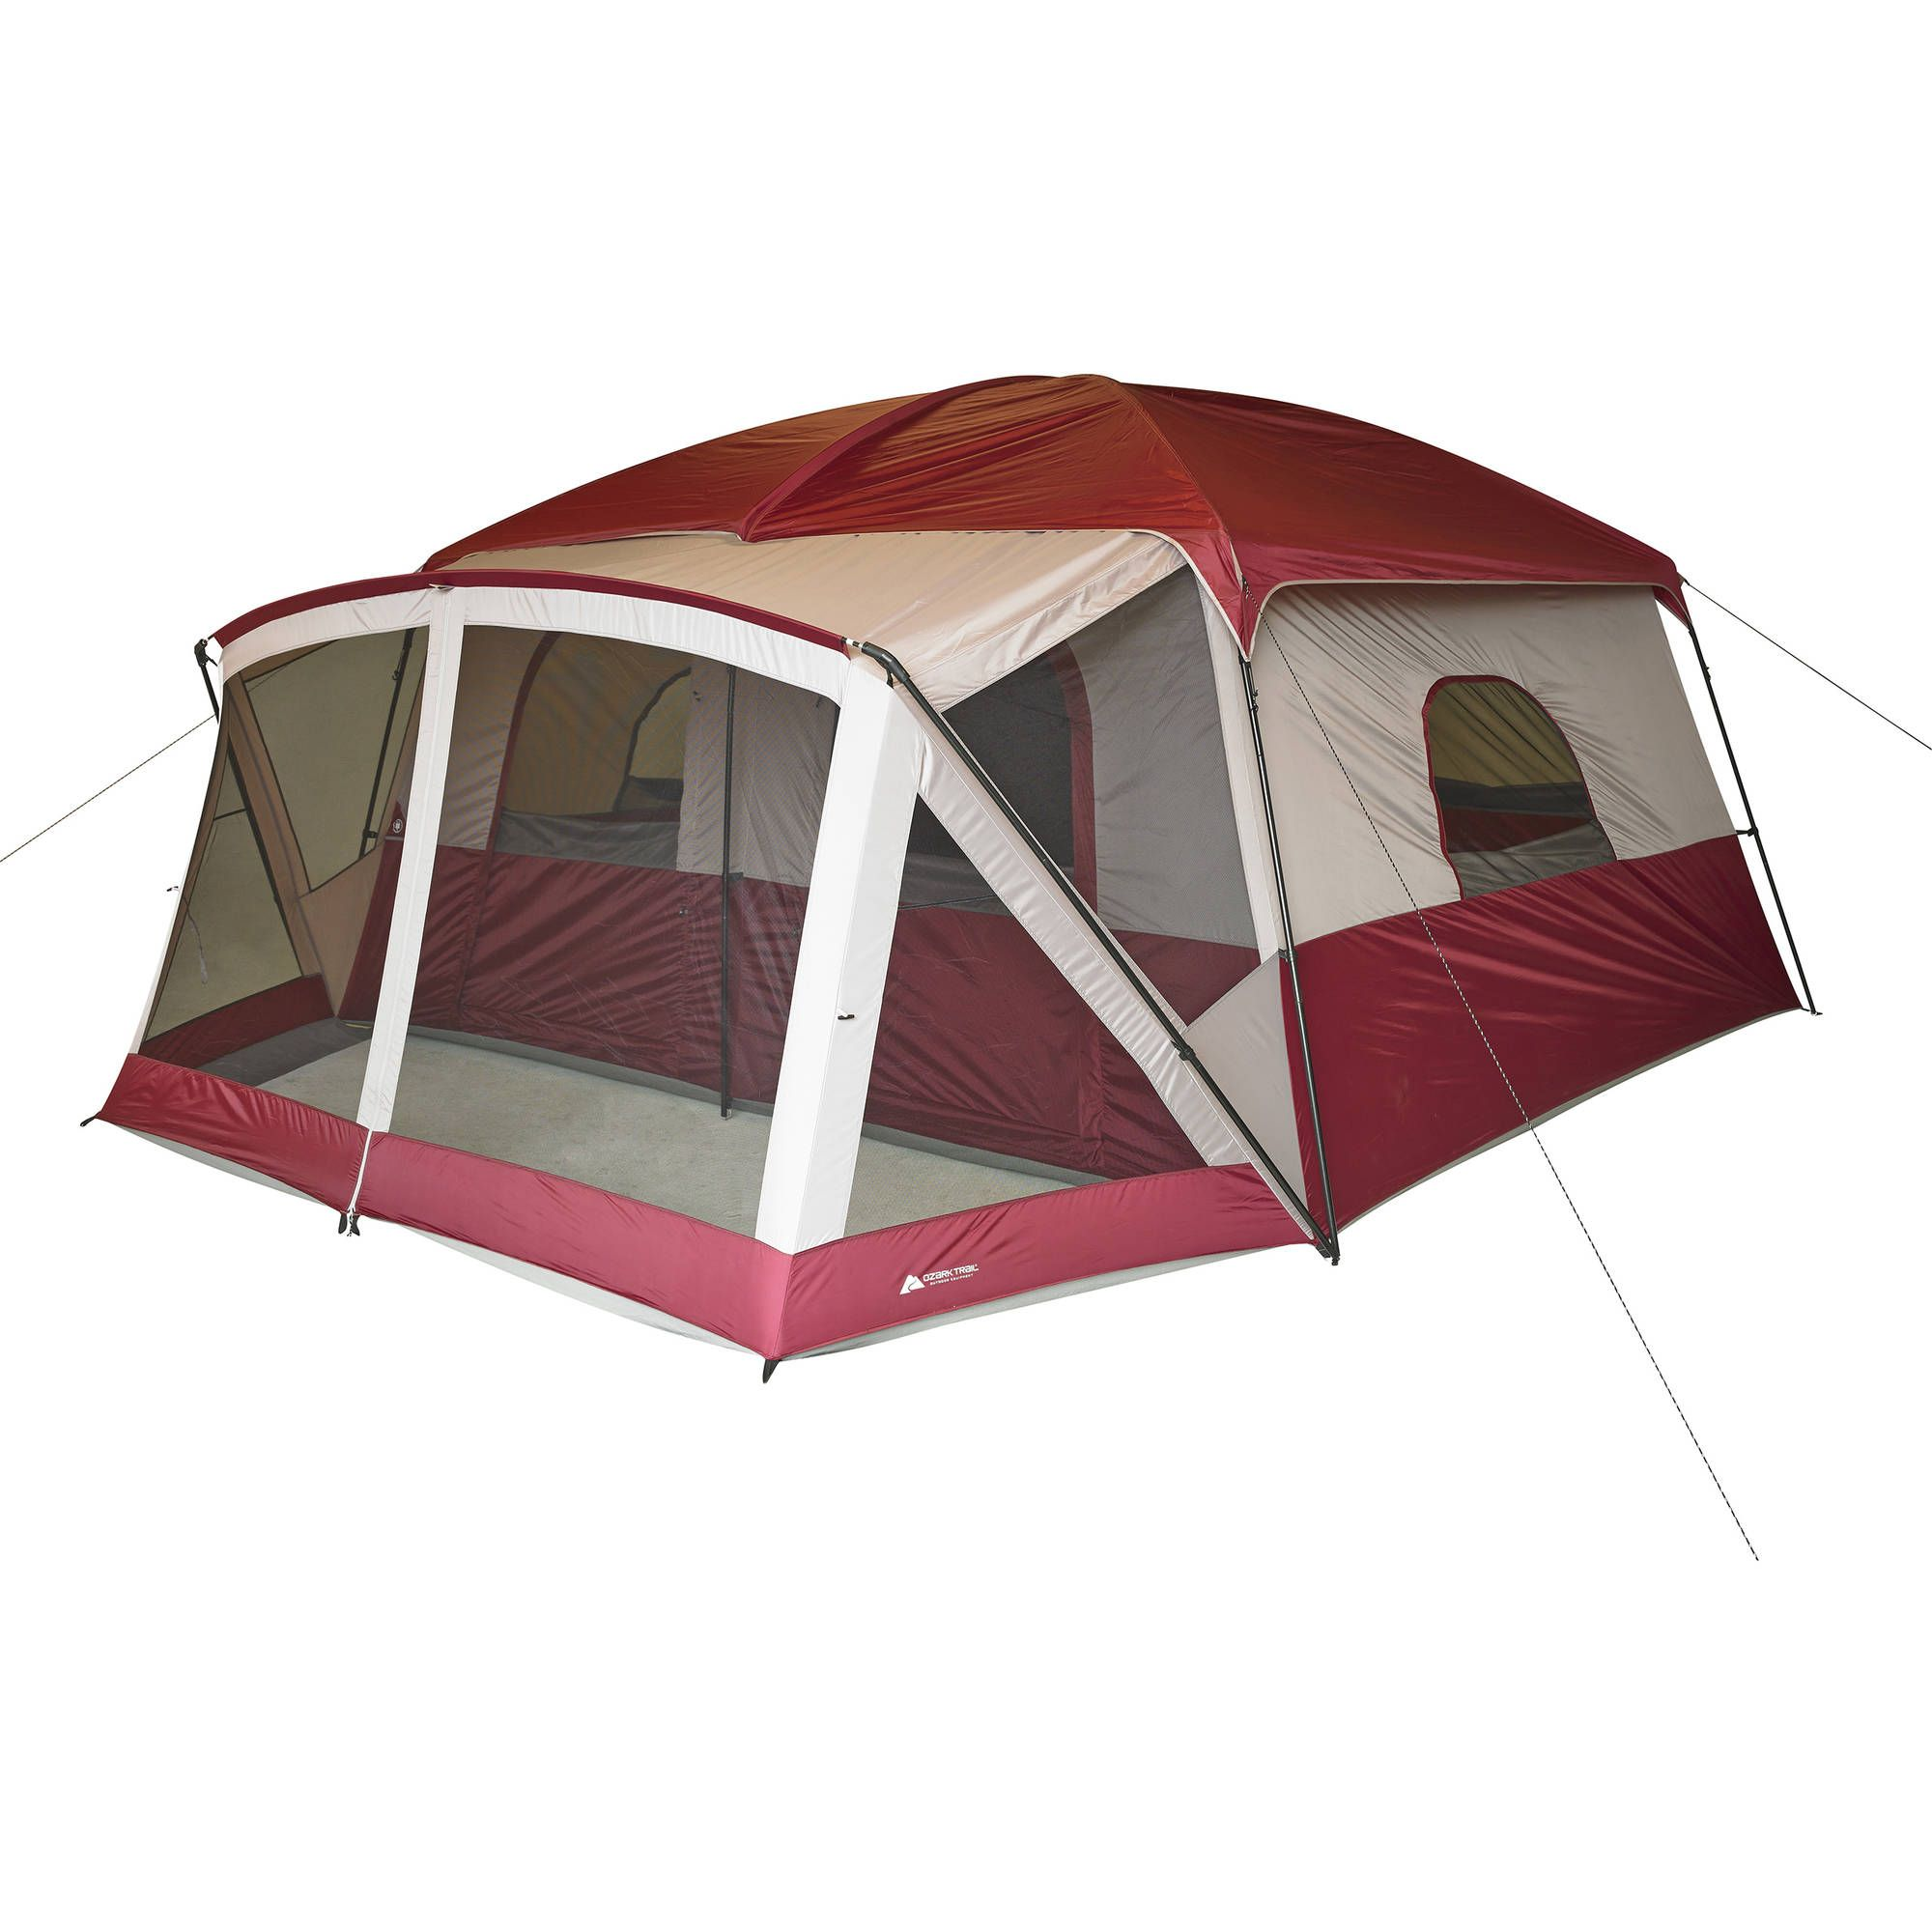 Ozark Trail 12 Person 2 Room Instant Cabin Tent With Screen Room Walmart Com Cabin Tent Tent Family Tent Camping